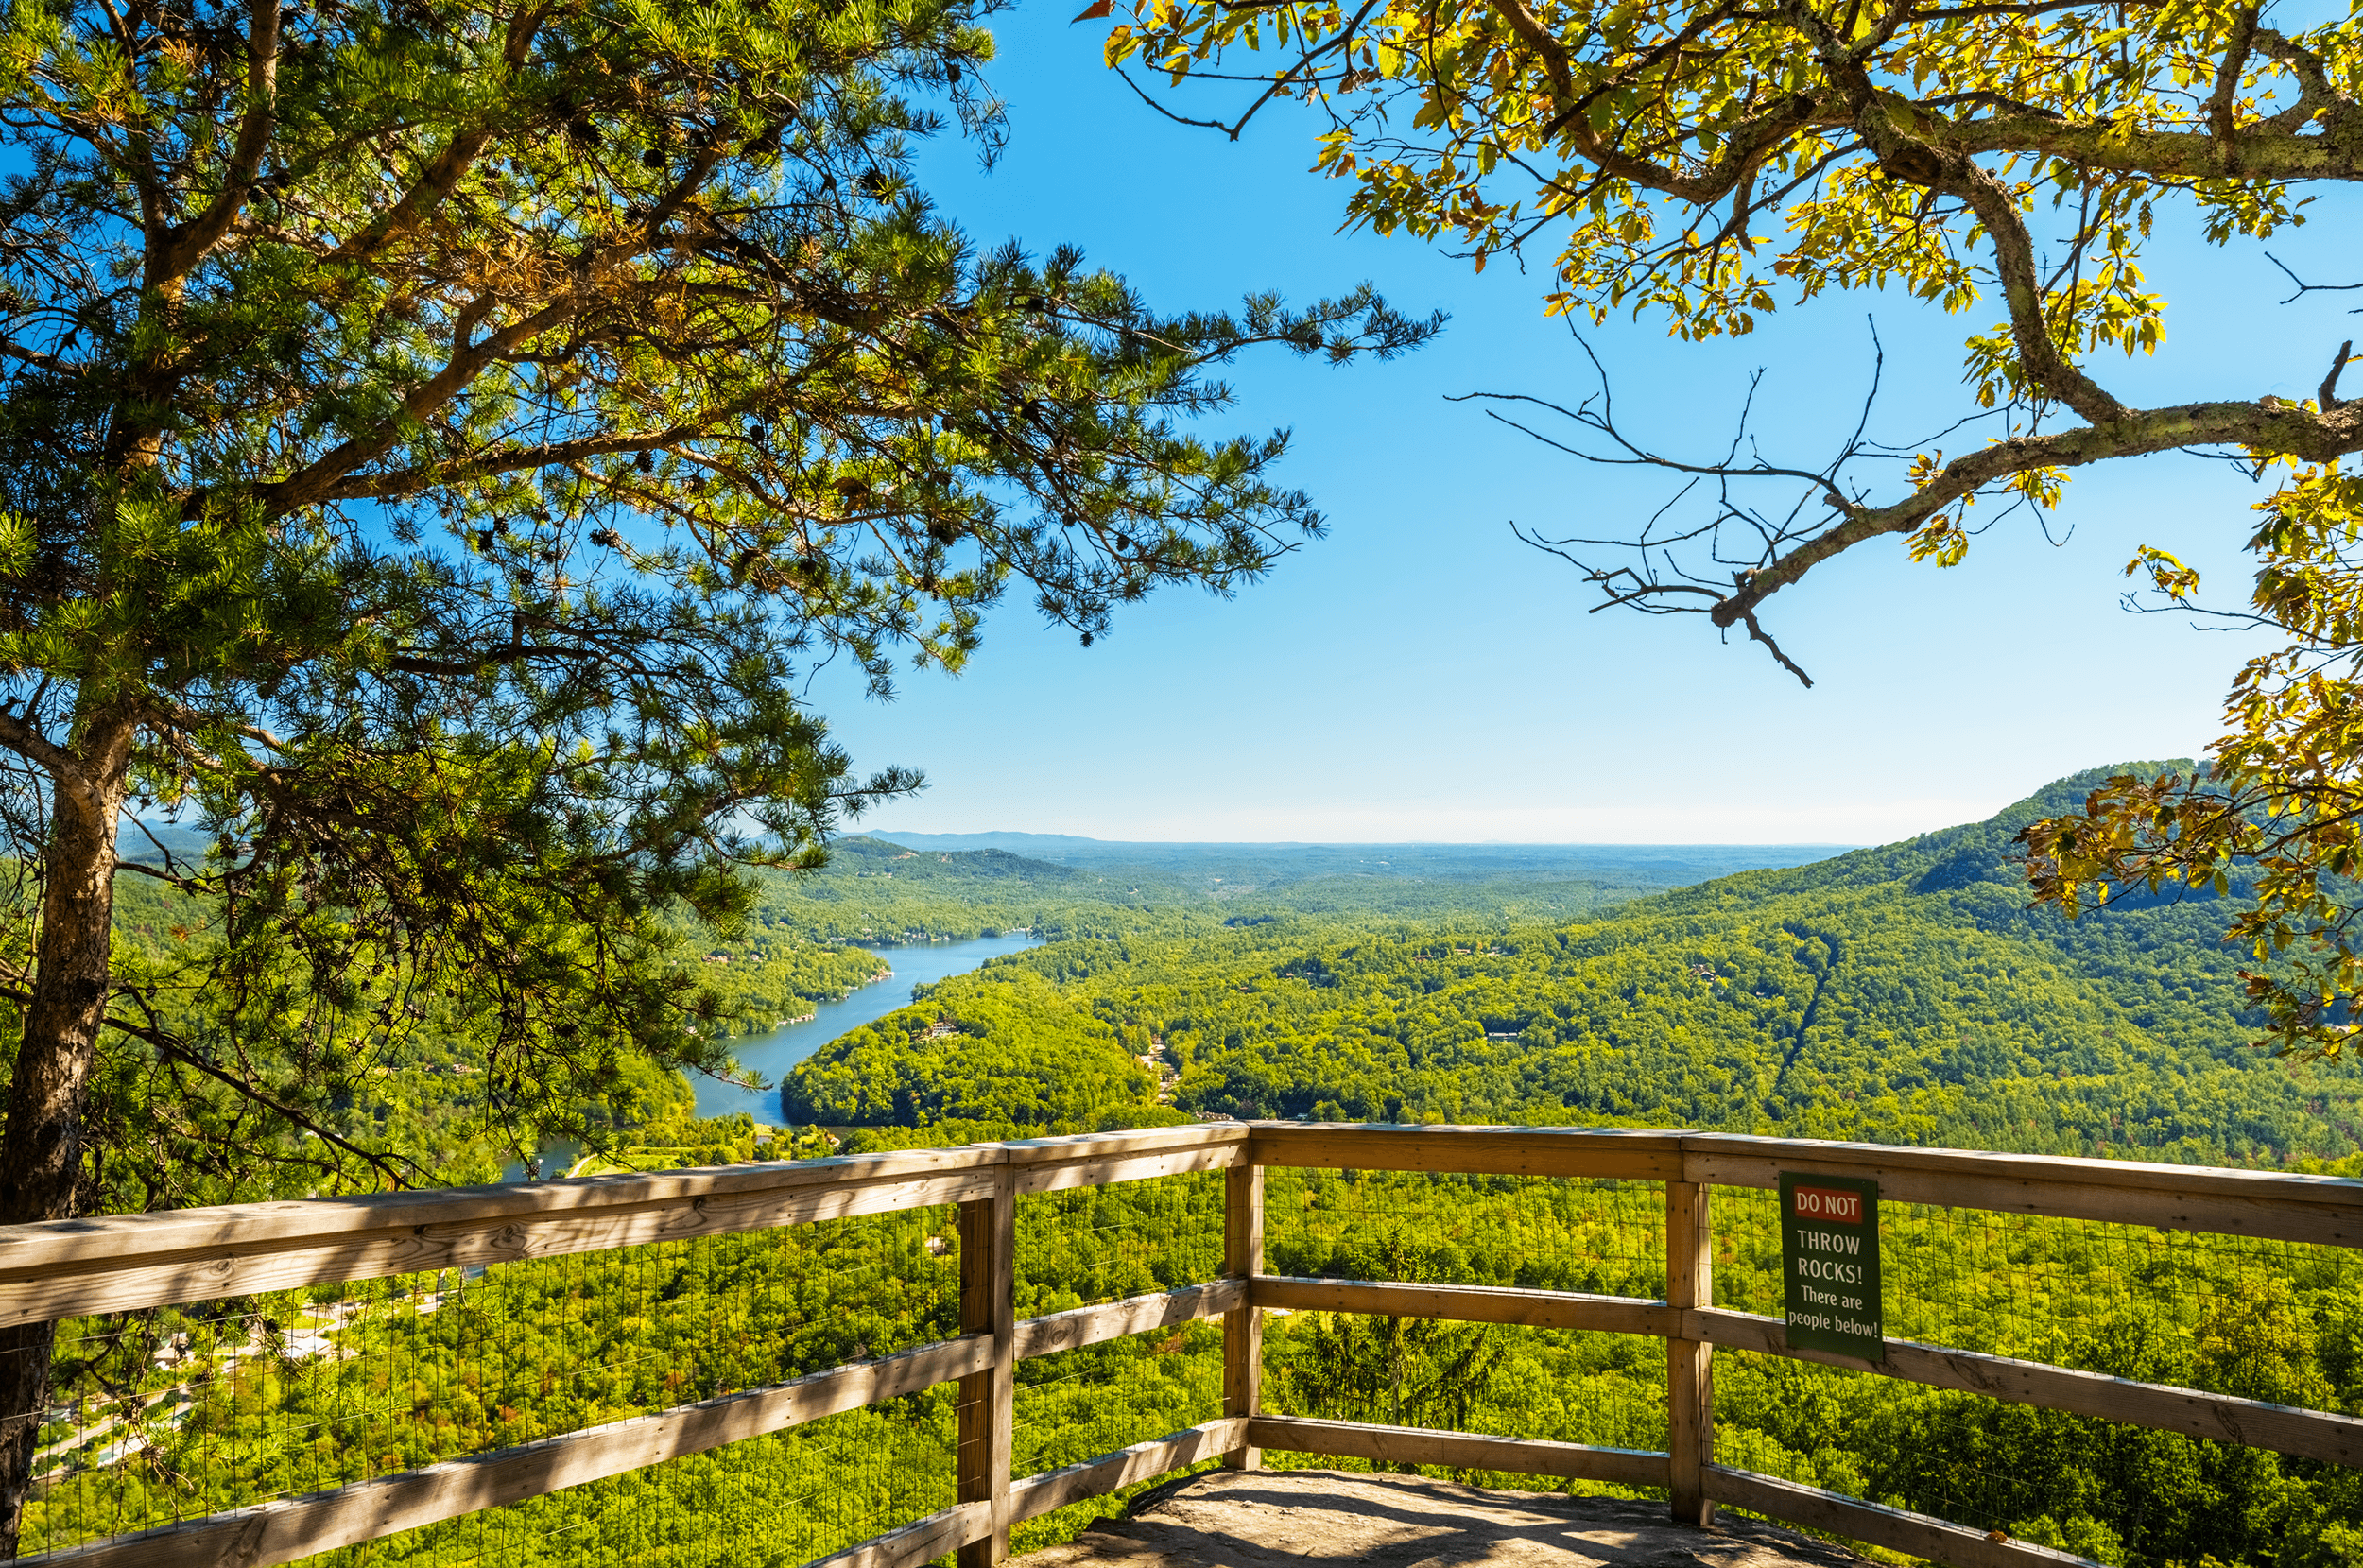 Vista Rock , located just below  Chimney Rock , offers another lovely scenic setting through its tree canopy. There are several more trails to explore throughout the park. For those, who wish to visit the park more frequently, an annual pass is also available.